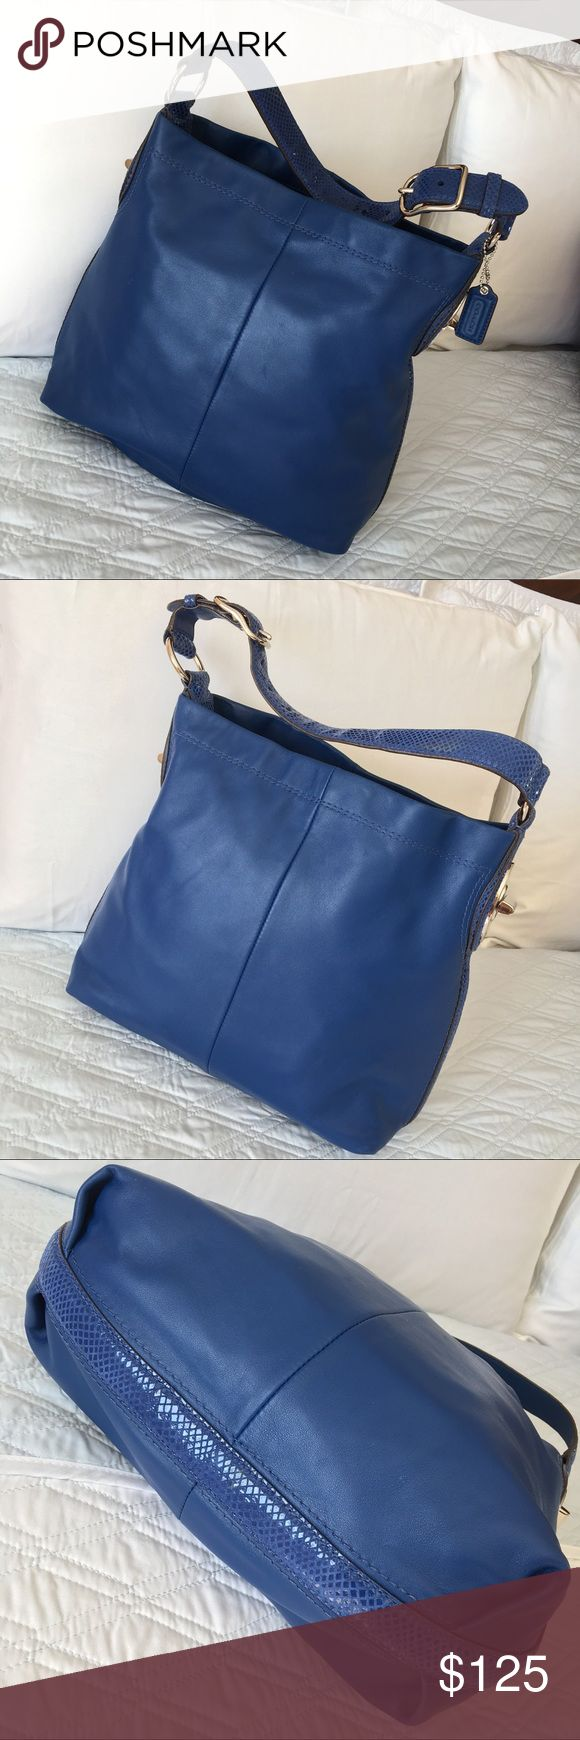 """Authentic Coach Leather Bag GORGEOUS 💕 Don't miss this beautiful leather Coach bag! Approximate measurements: (middle, laying flat) 13"""" x 13"""" x 4.5"""" Silver tone hardware and interior pockets. In very good condition (minor scratches/marks) NO TRADE ❌ Coach Bags"""